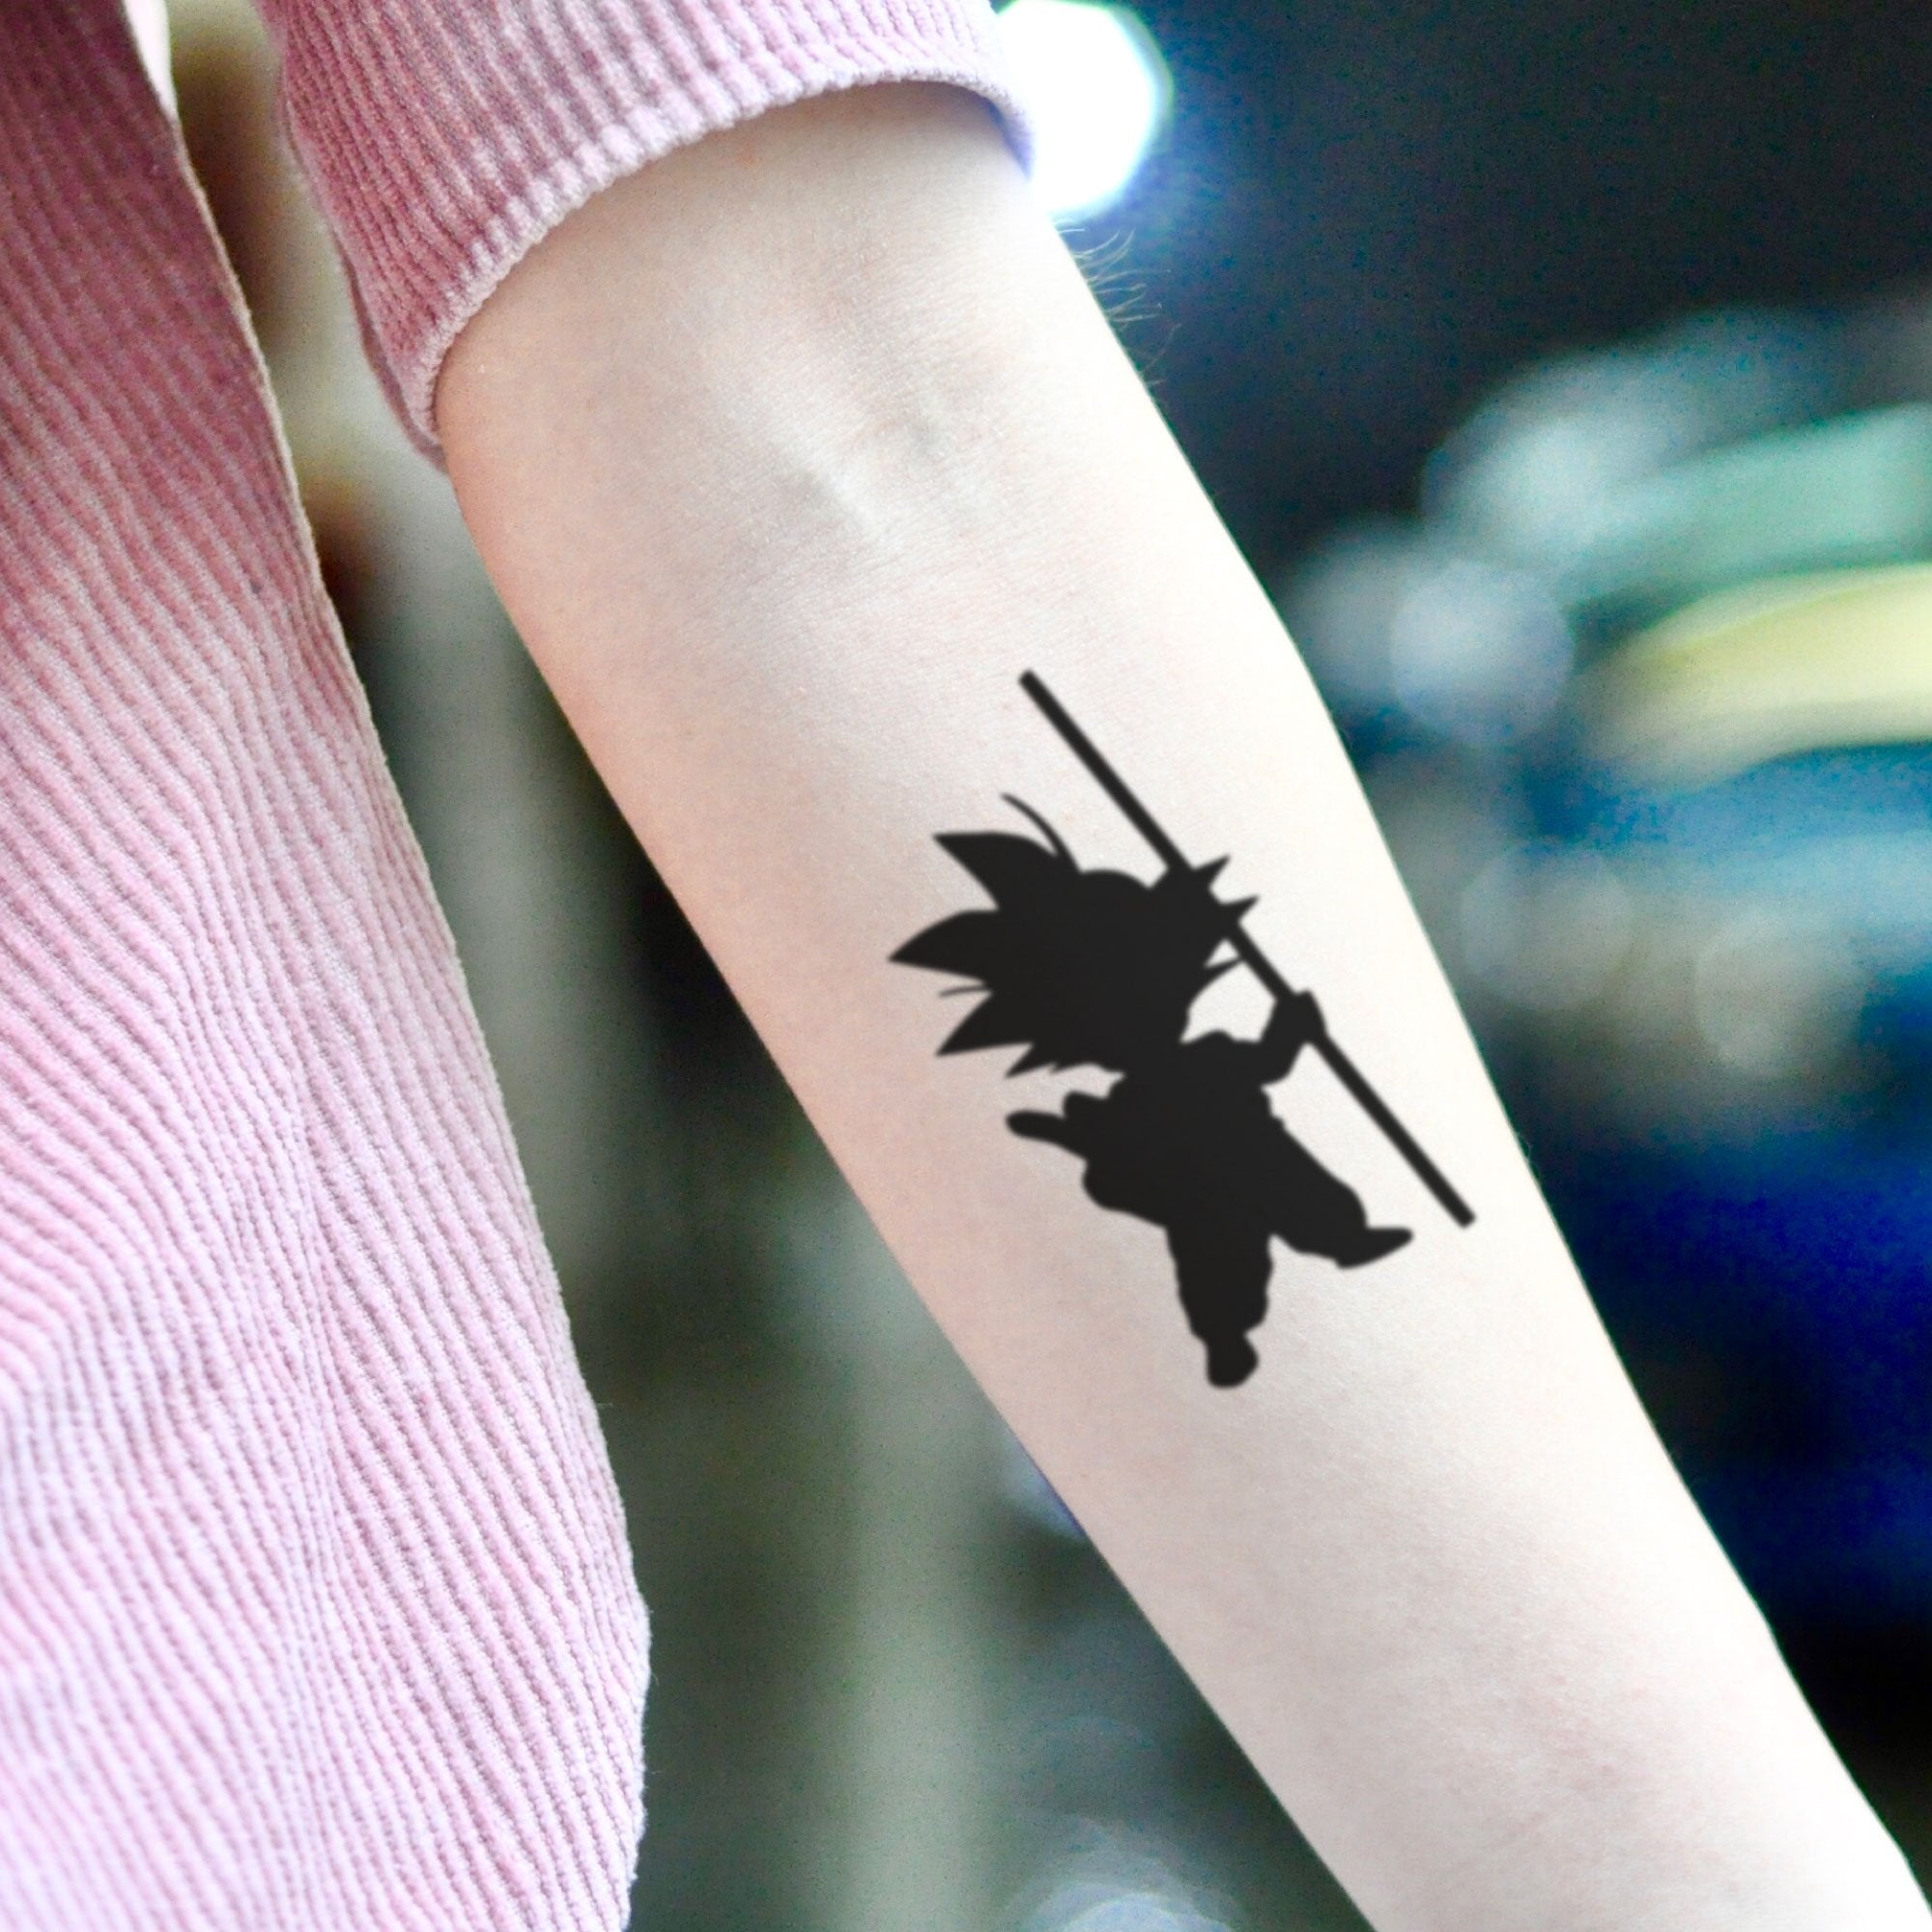 Small 8 Ball Tattoo: Kid Goku Super Saiyan Dragon Ball Z Temporary Tattoo